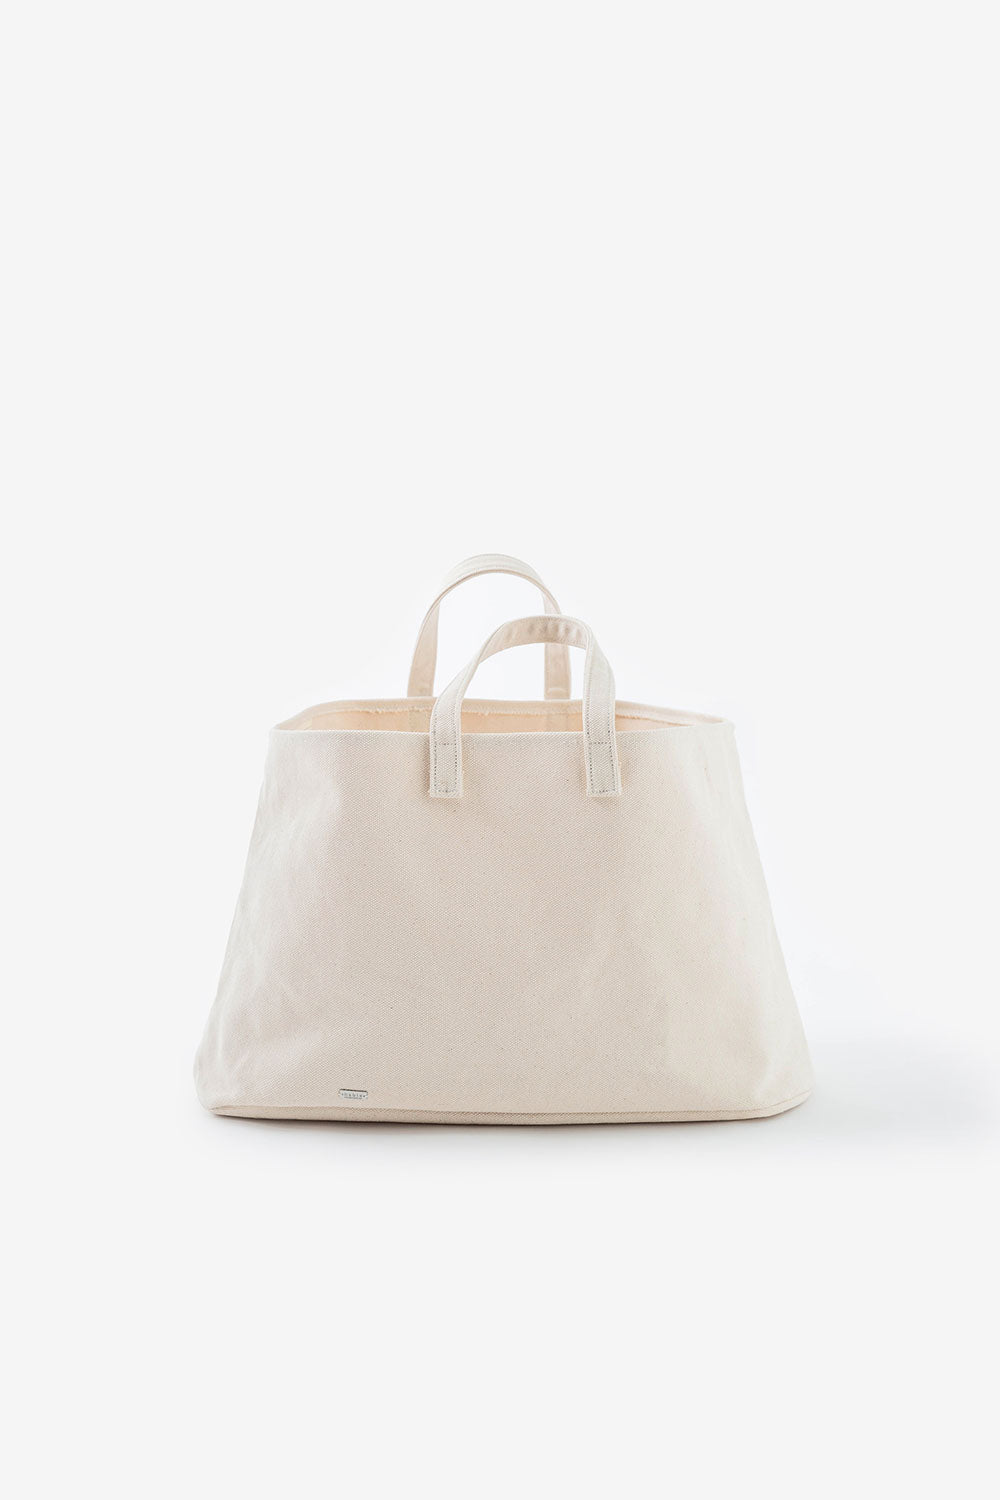 Alabama Chanin Hable Canvas Tote Bag with Handles